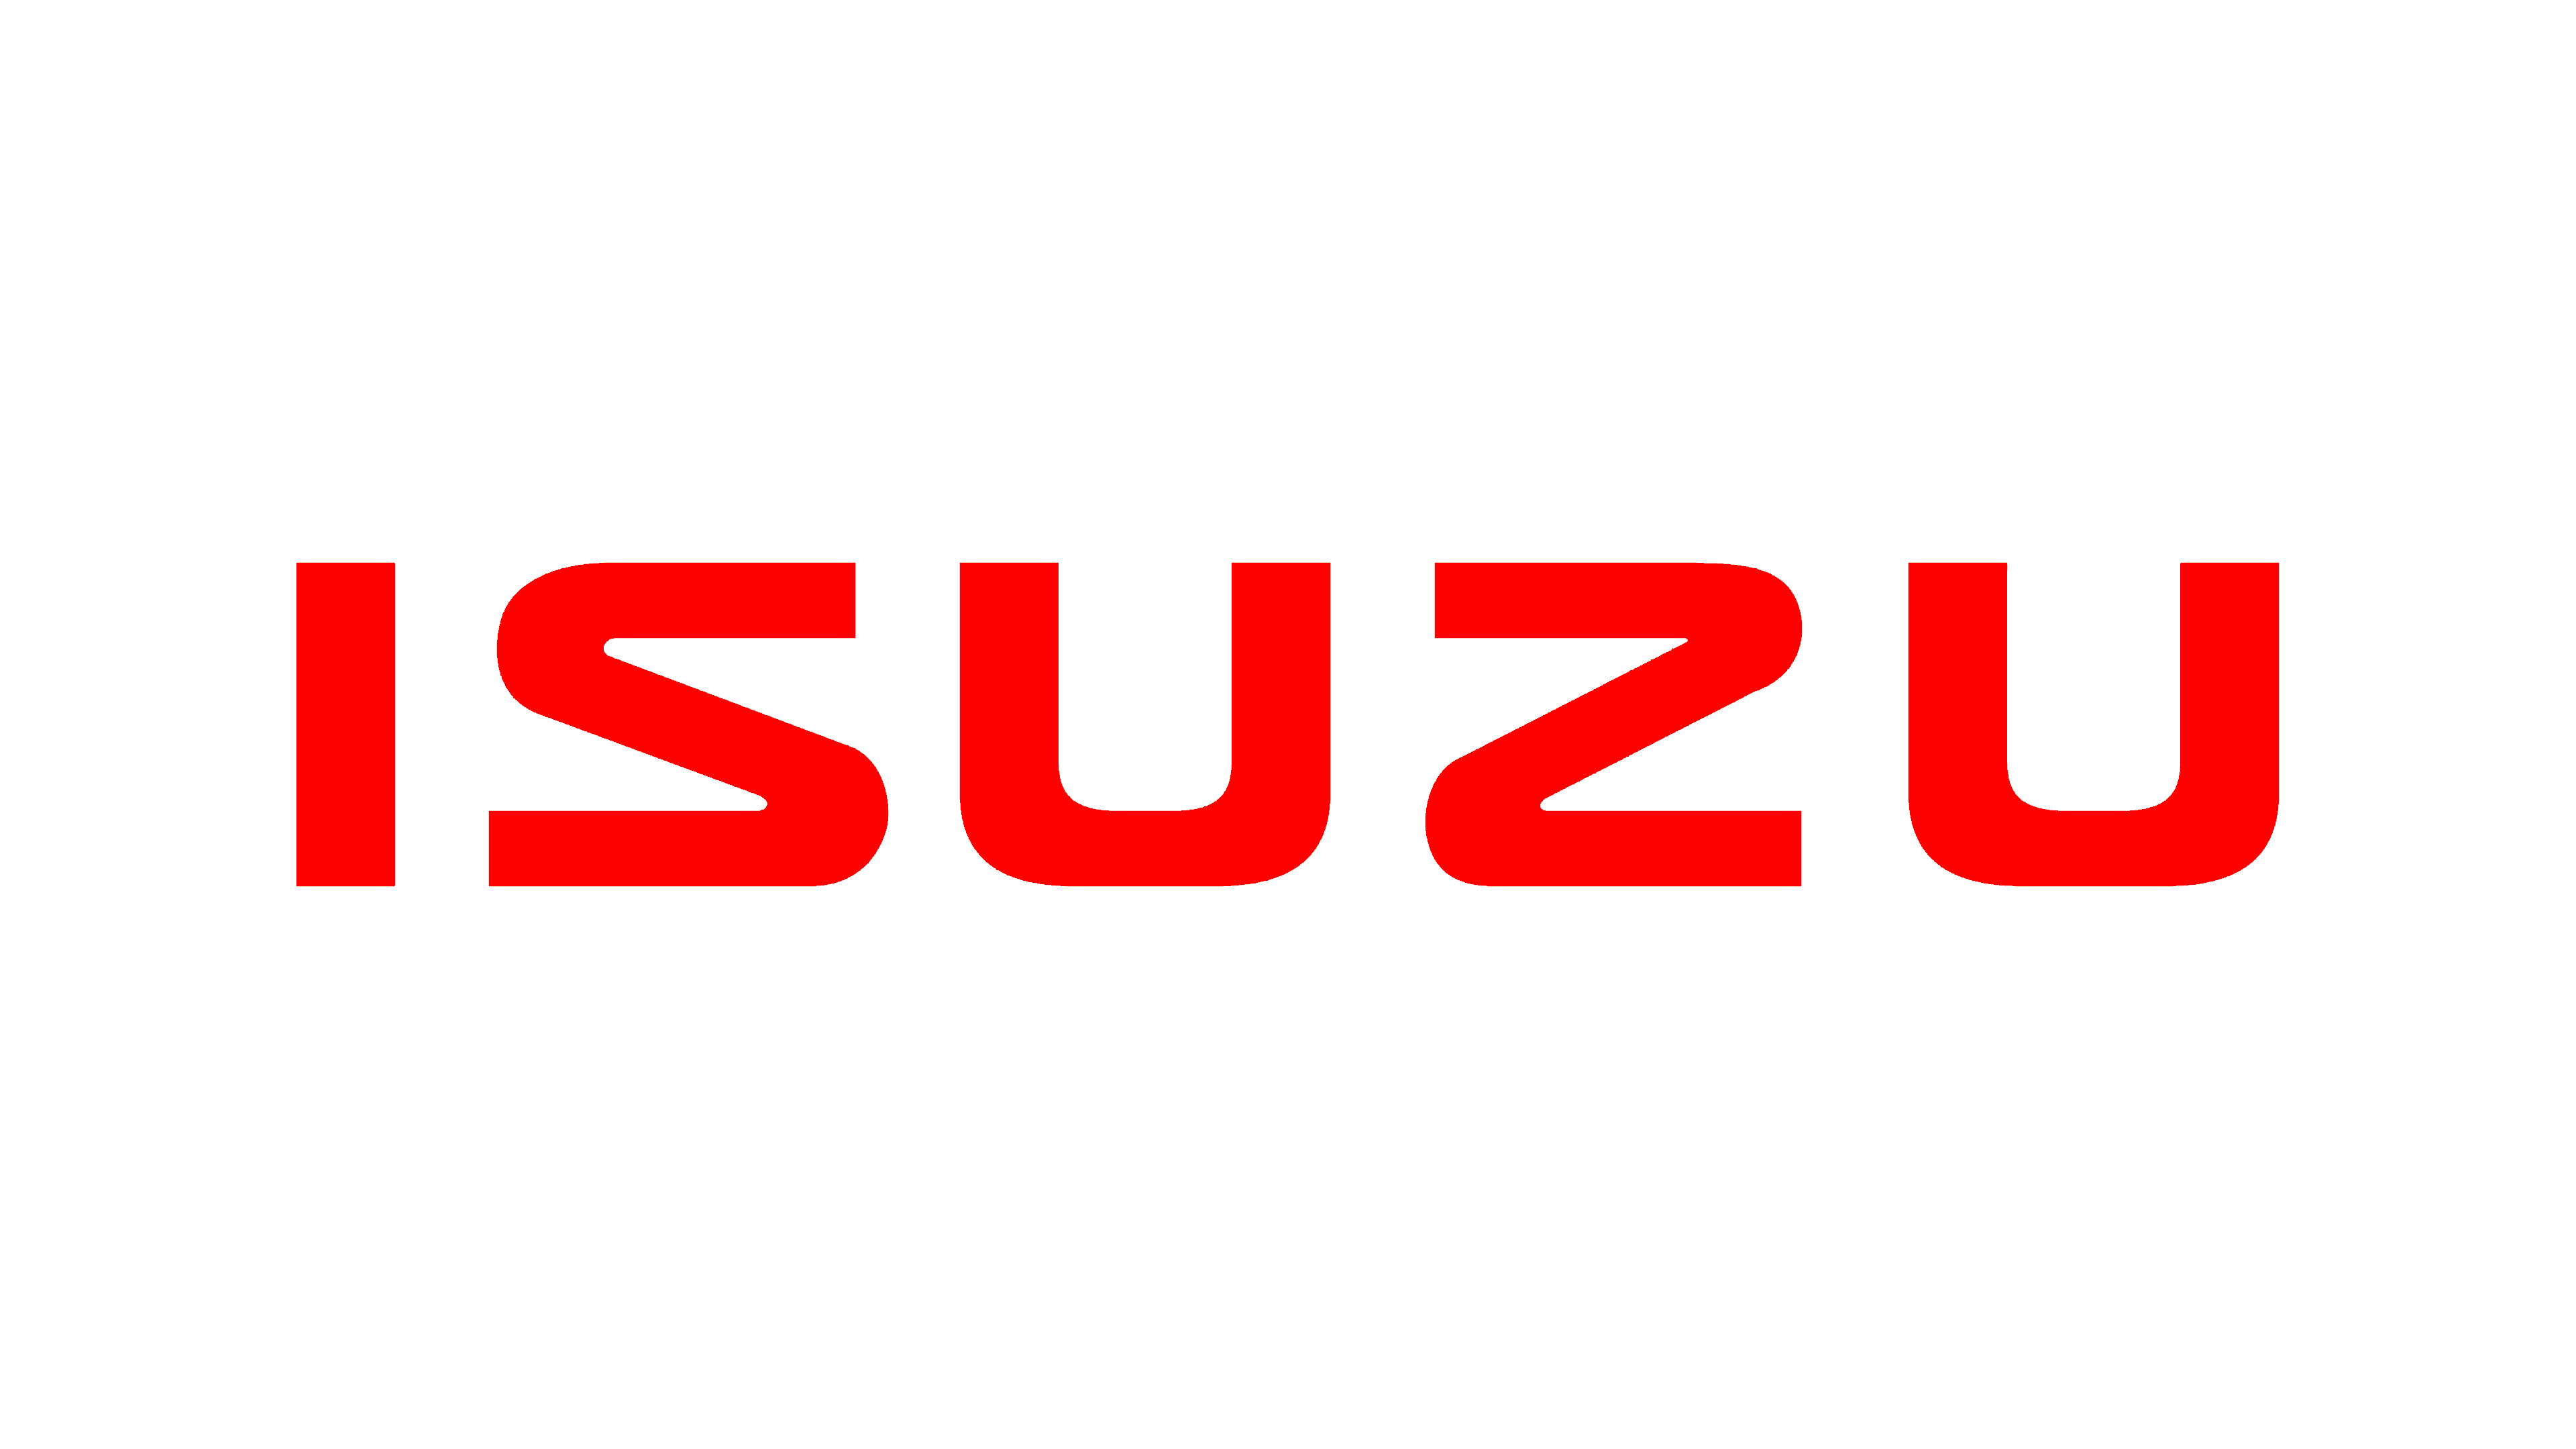 Isuzu Recalling 1,138 Vehicles Due To Seat Belt Complications